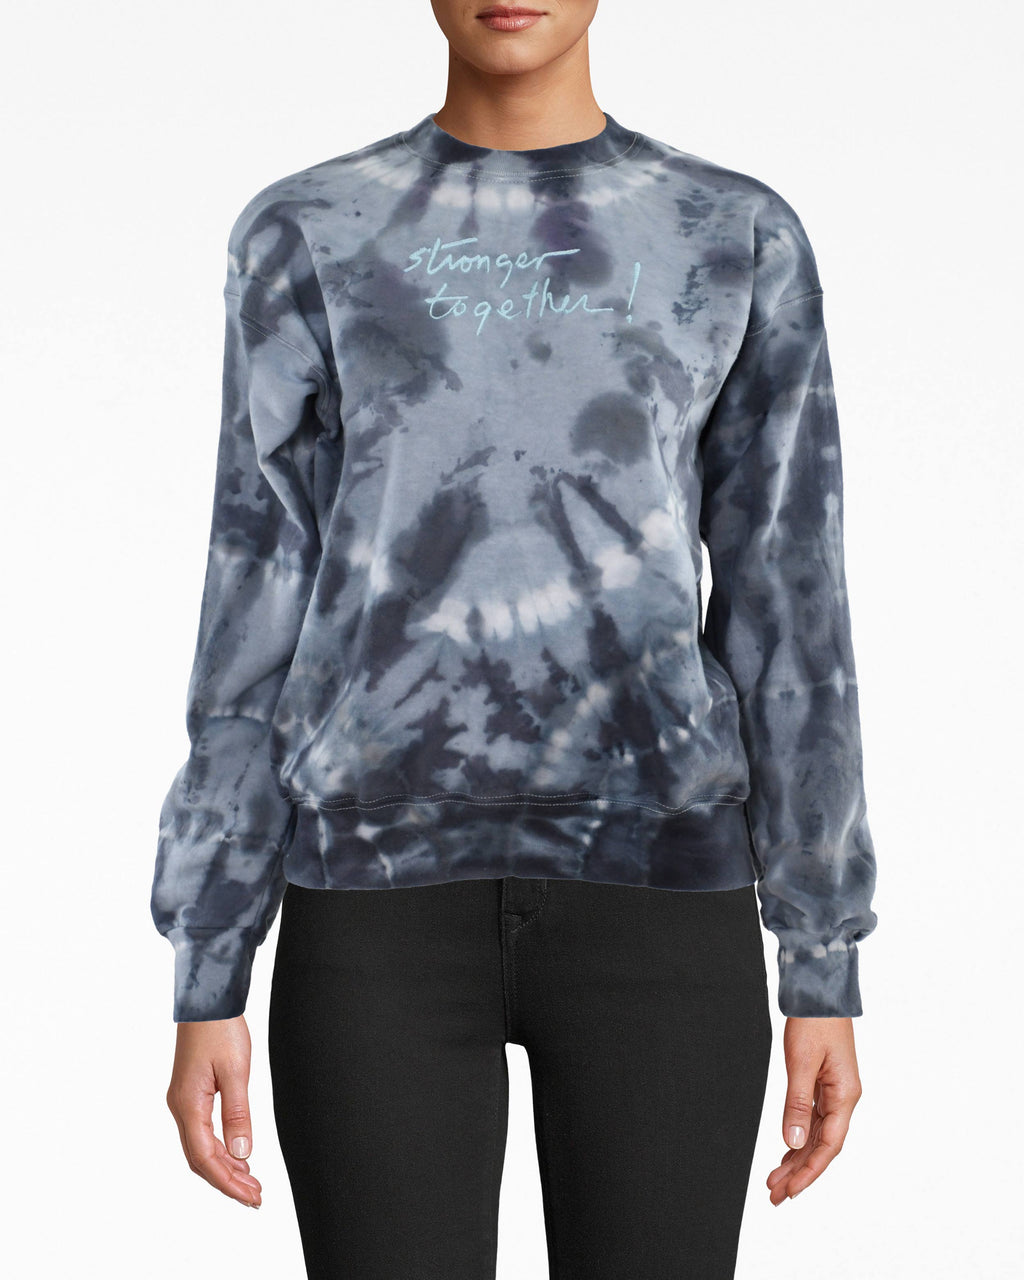 "CT18634 - ""Stronger Together"" Embroidered Sweatshirt - tops - knitwear - Tie dye is back and better than ever. This on-trend style has a classic crewneck sweatshirt silhouette. Wear with anything from leggings to white denim. Hand dyed and embroidered in the USA. Size up for a cozy, oversized fit."